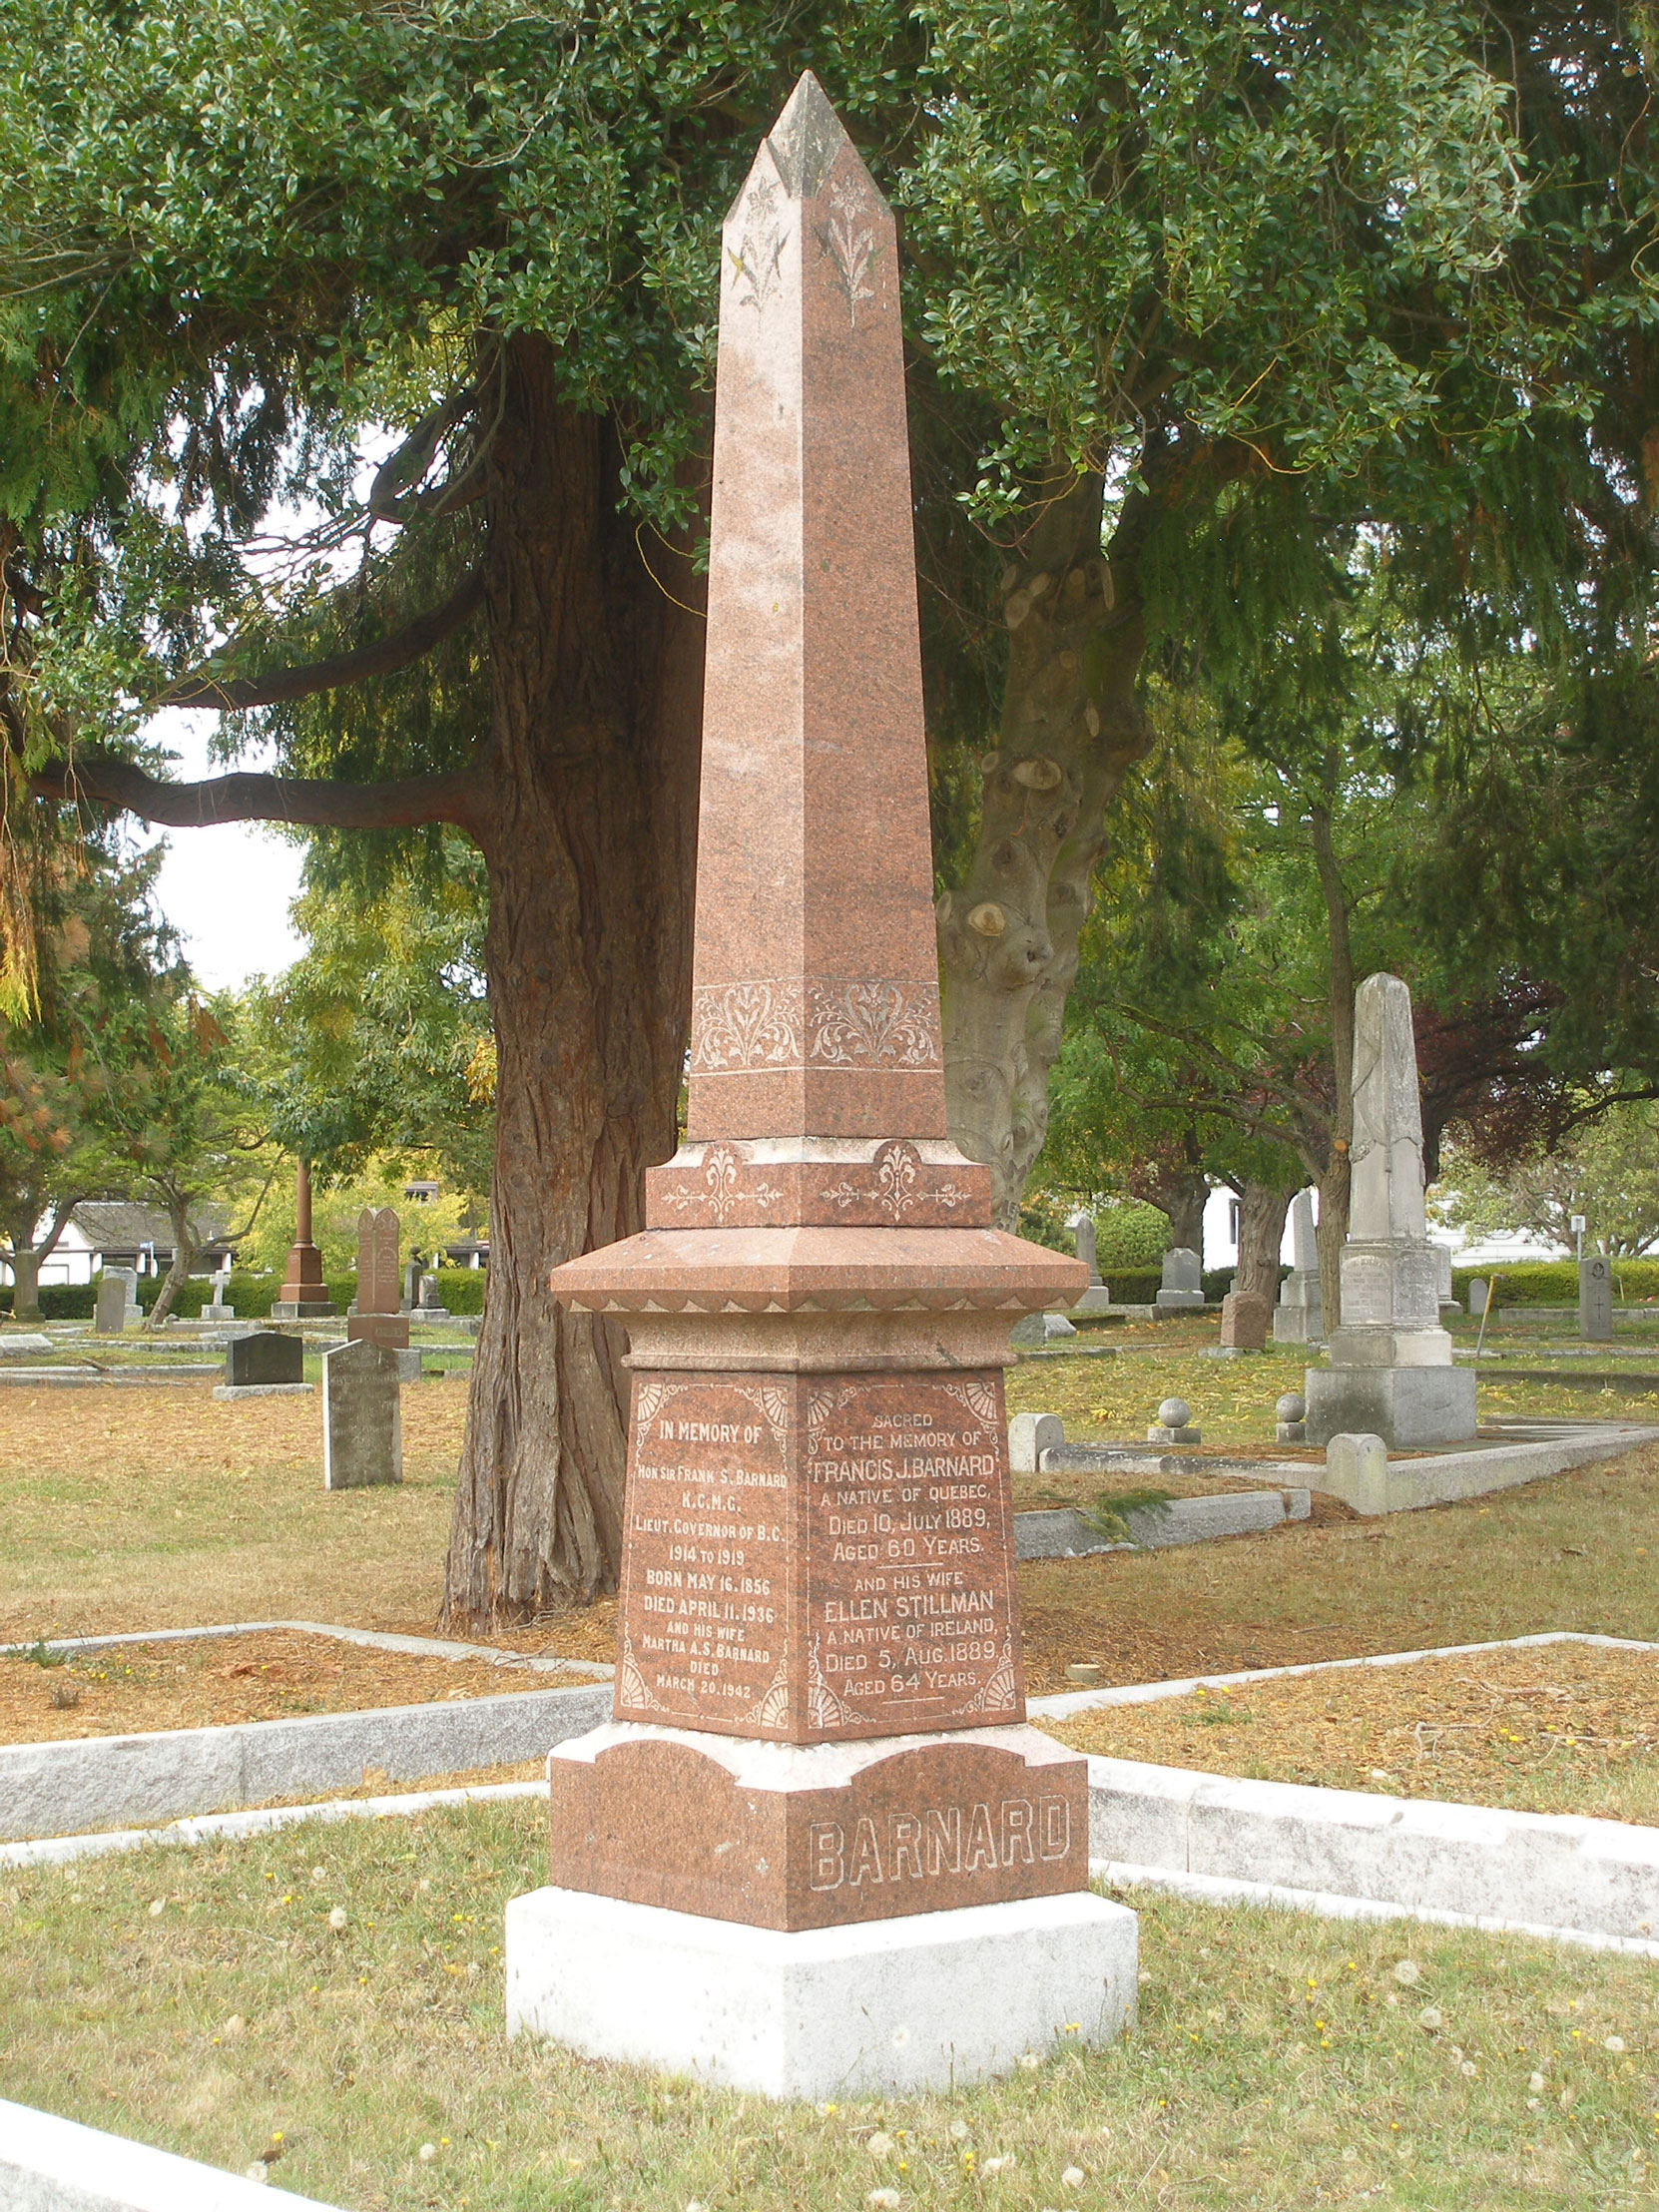 Sir Frank Stillman Barnard, family grave, Ross Bay Cemetery, Victoria, B.C. (photo by Mark Anderson)